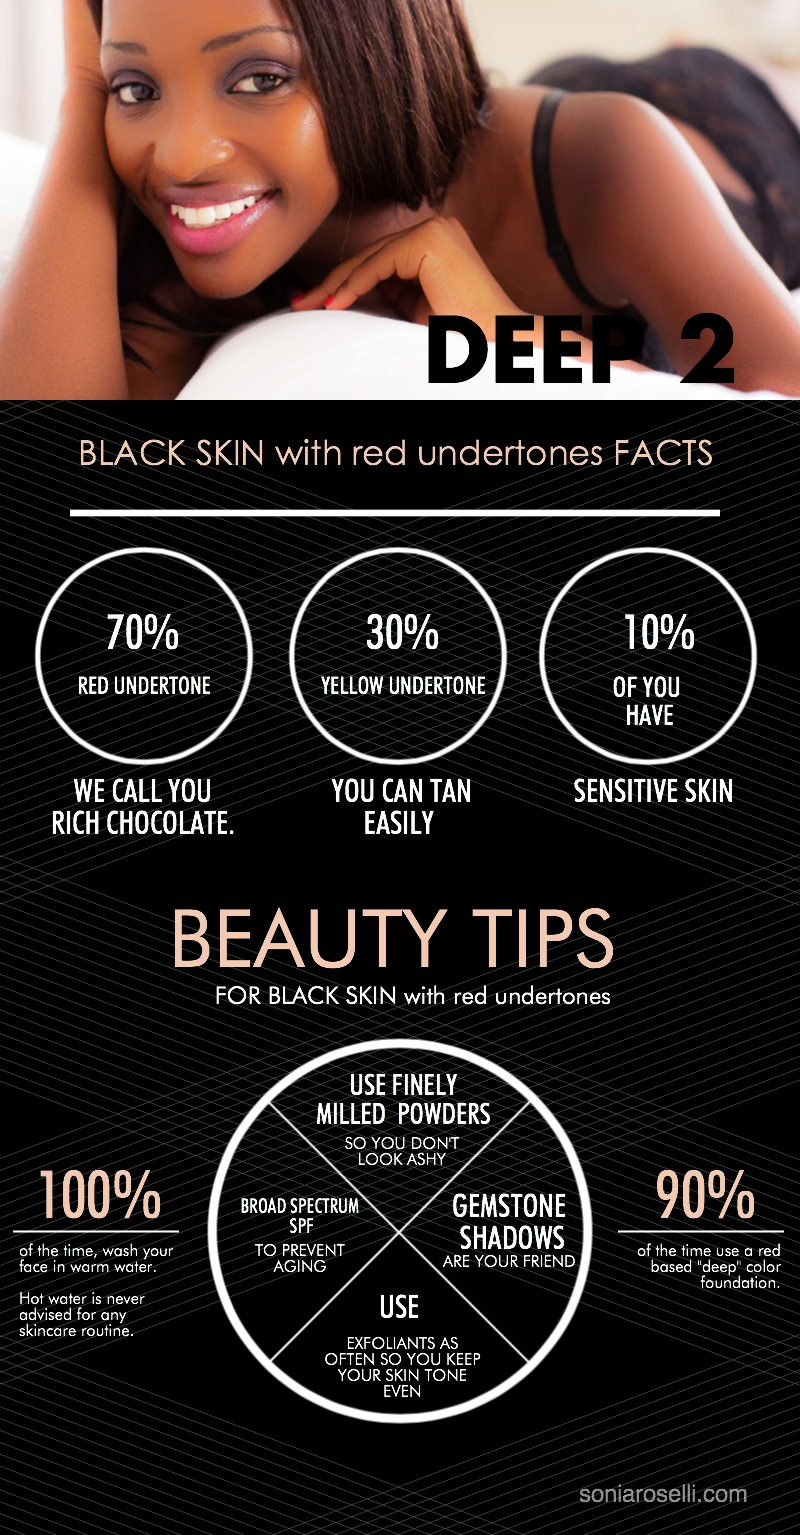 Characteristics of Deep Skin with Red Undertones